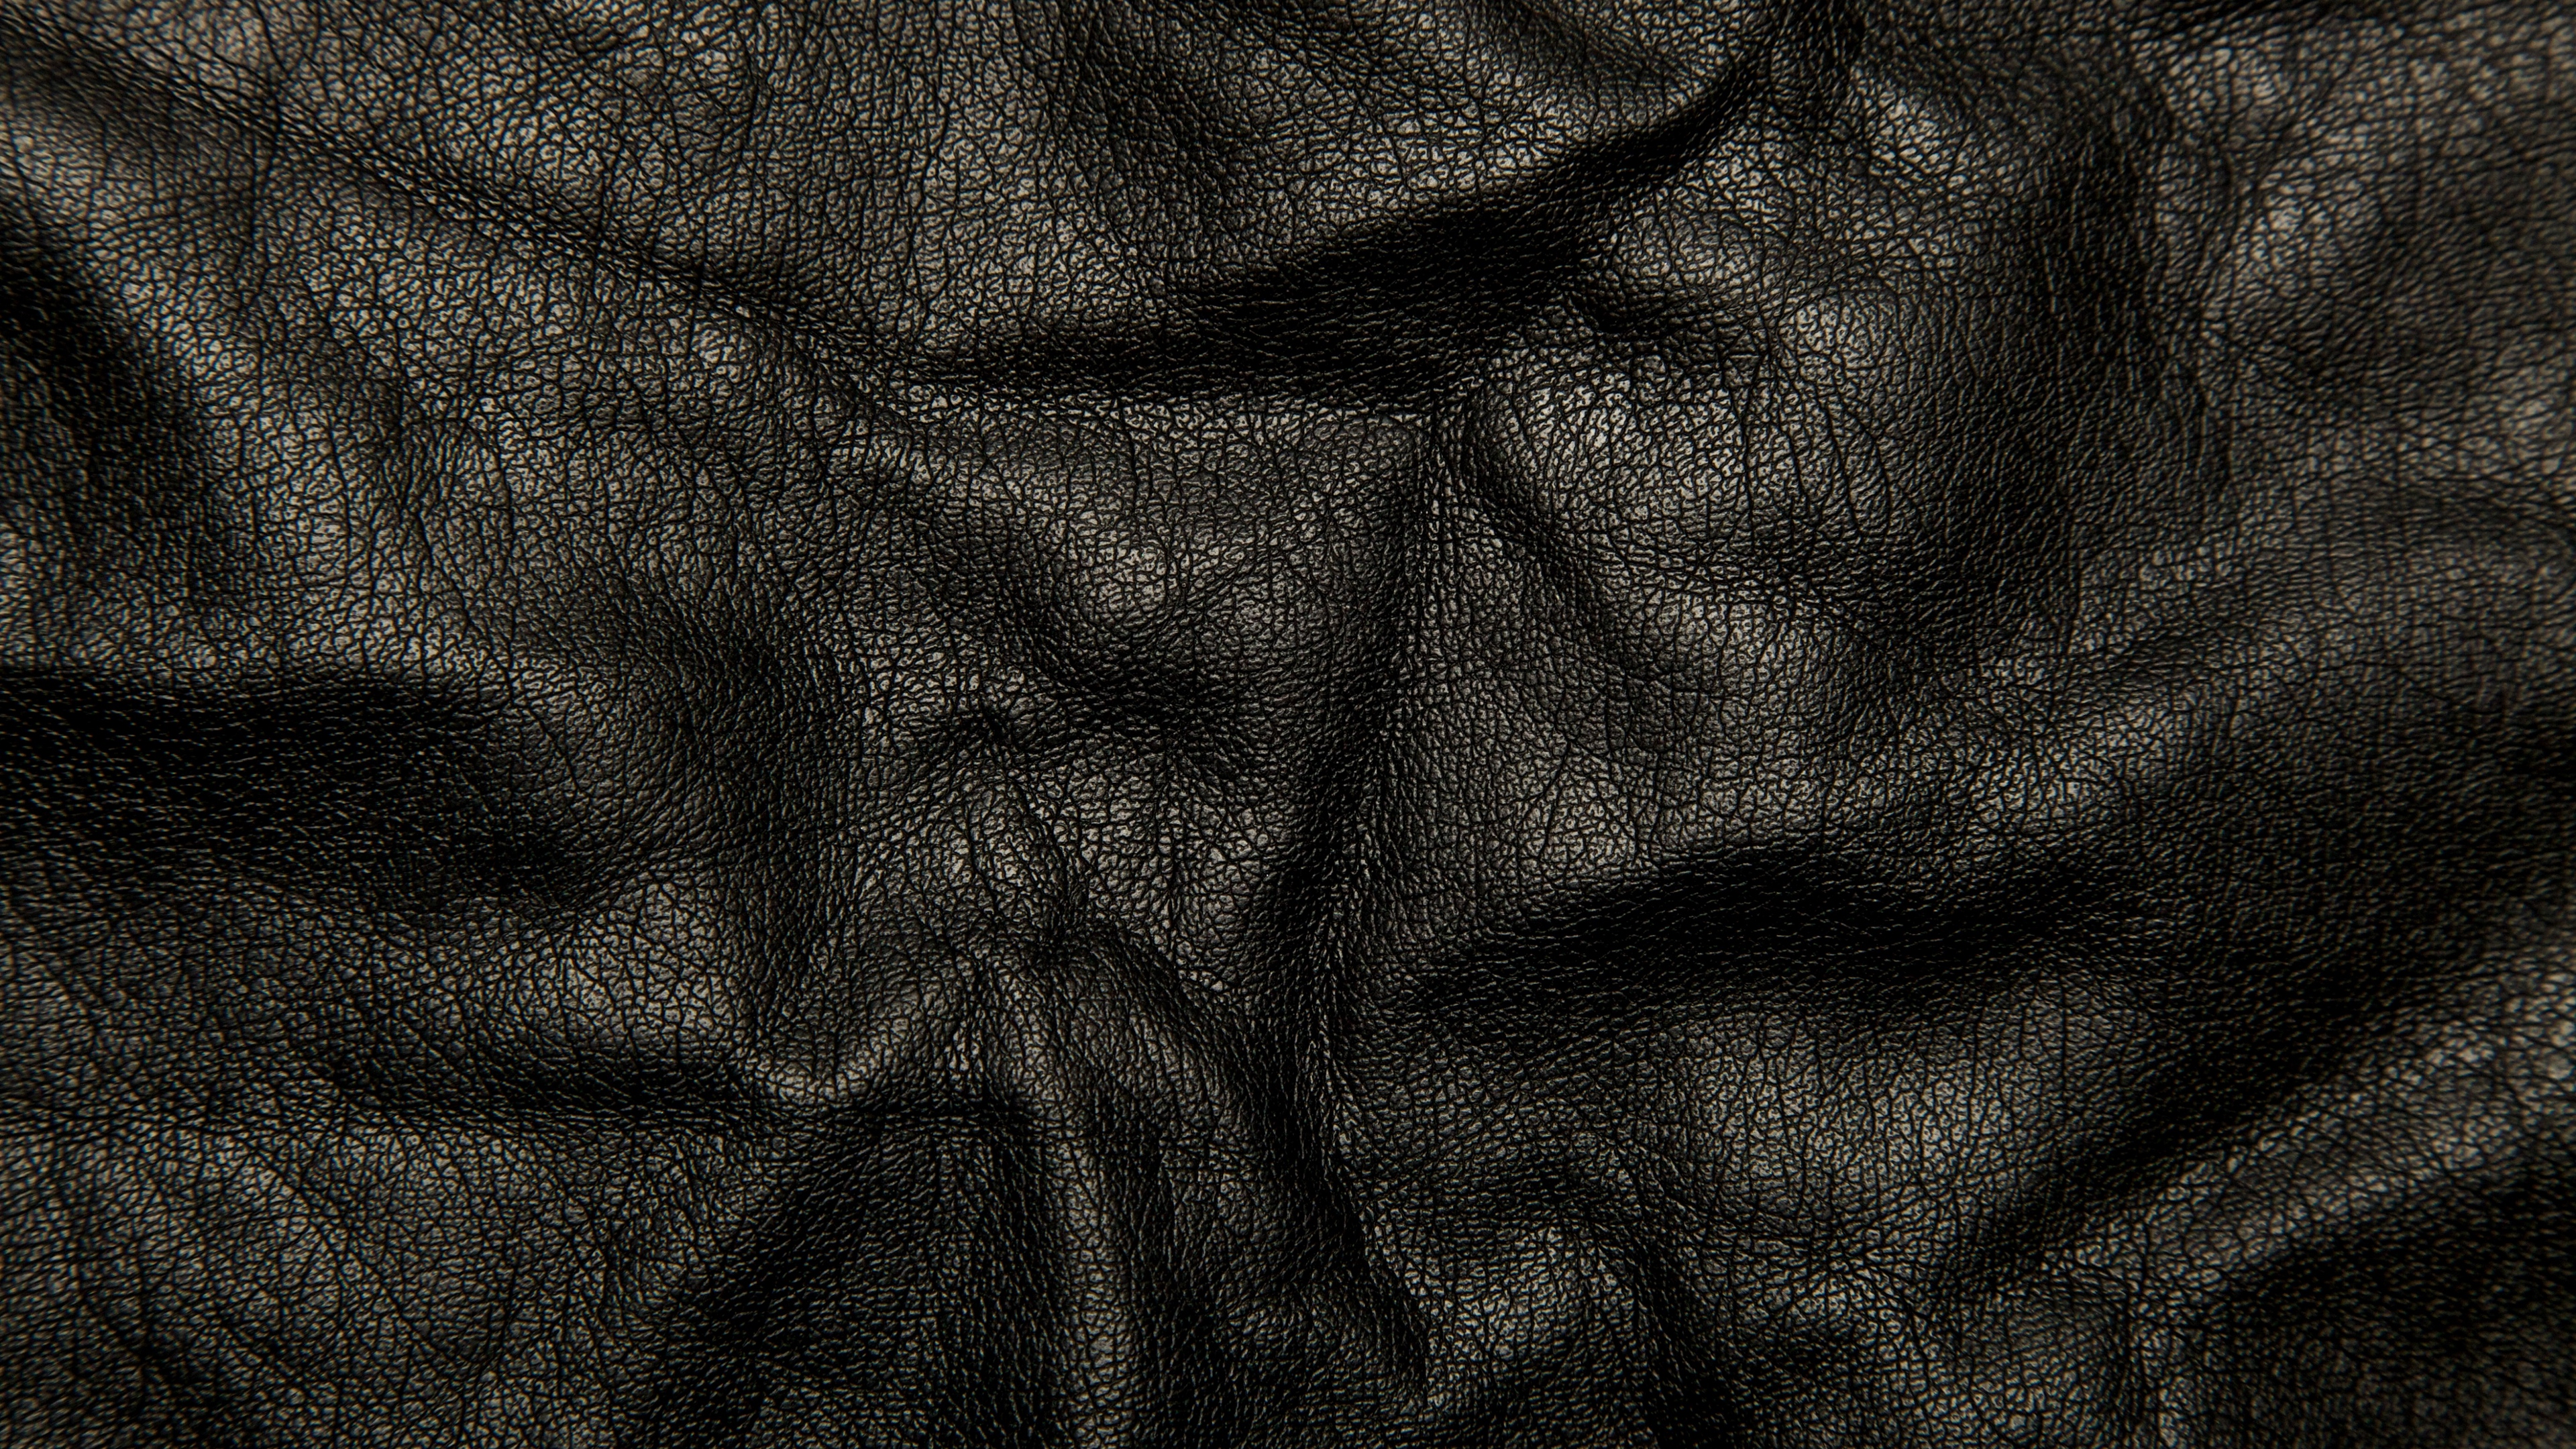 leather black background texture wrinkles cracks 4k 1536097839 - leather, black, background, texture, wrinkles, cracks 4k - leather, Black, Background